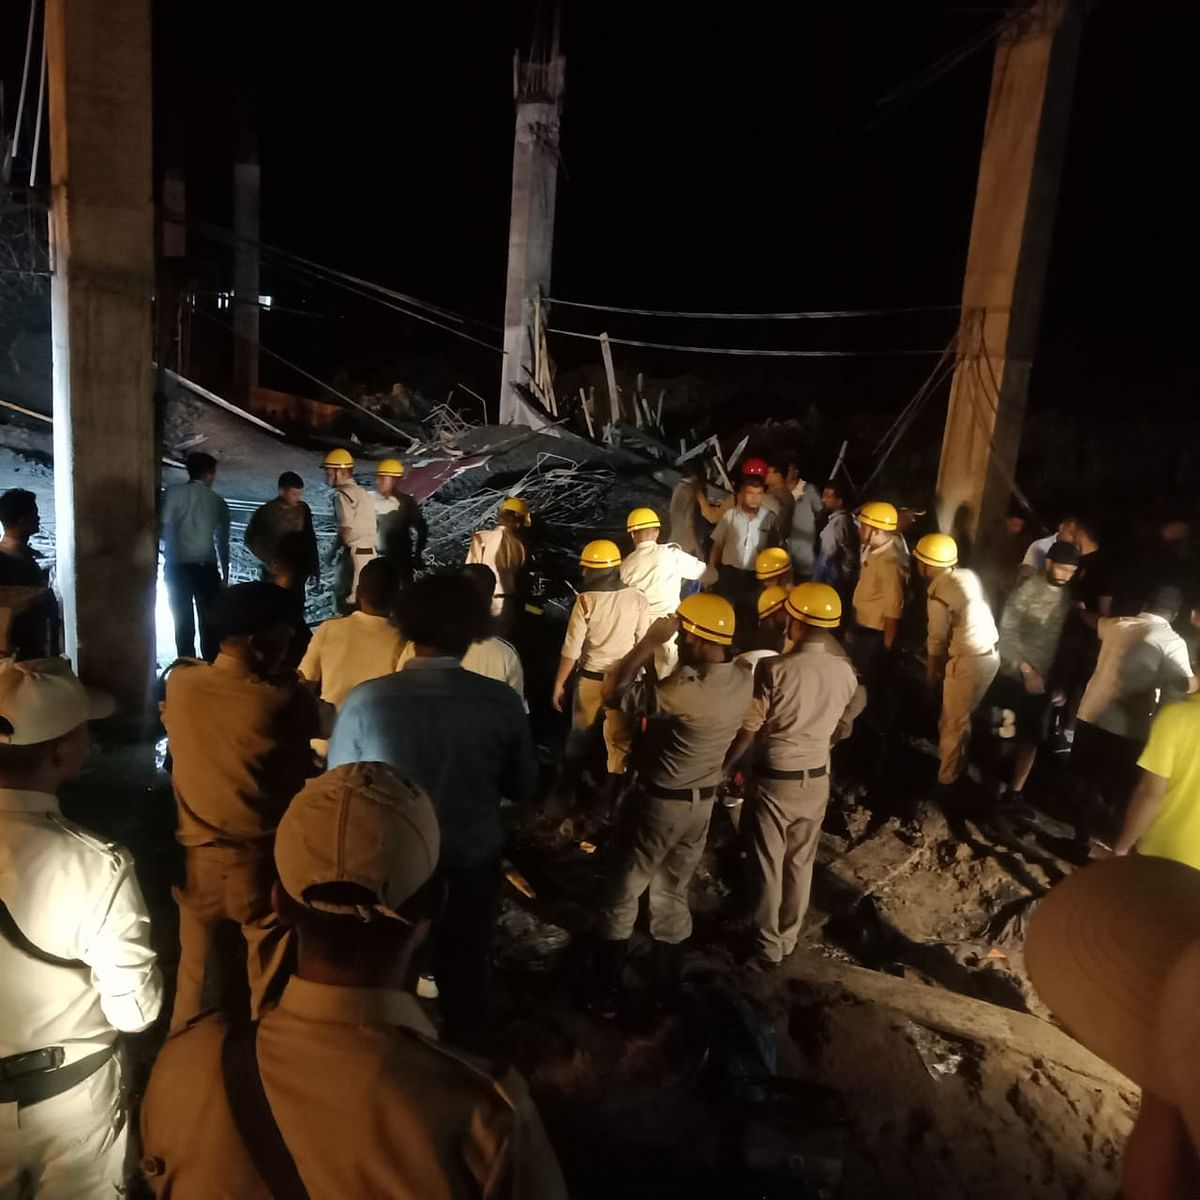 At least 10 persons were injured when a portion of an under-construction building collapsed at the Imphal International Airport in Manipur on Wednesday evening